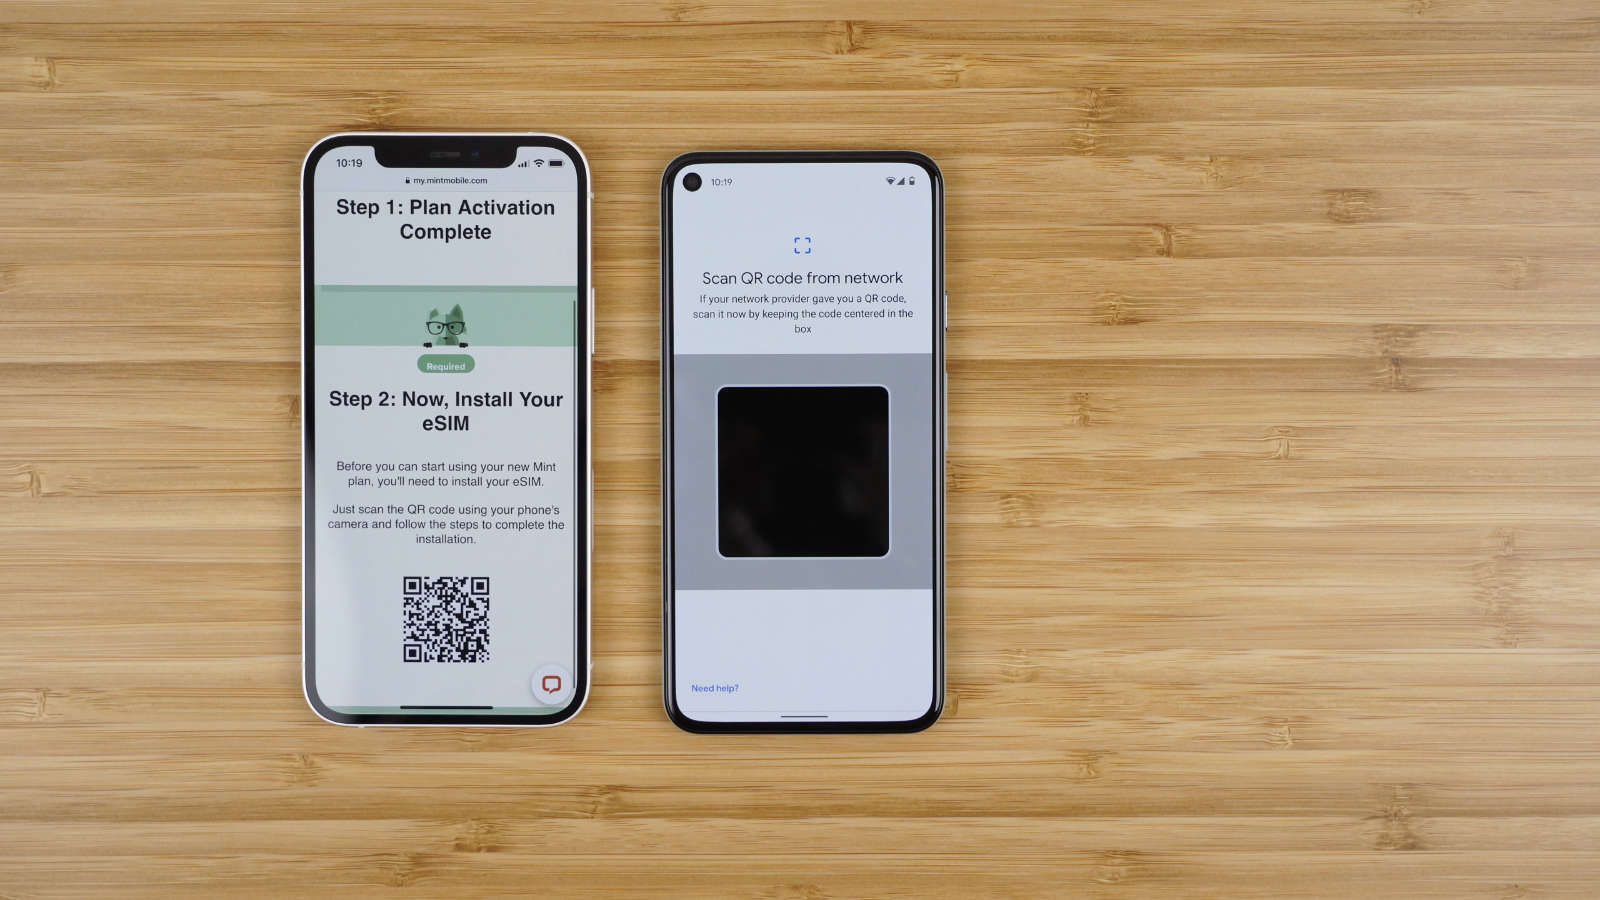 Scan the QR code sent to your email to activate your service.